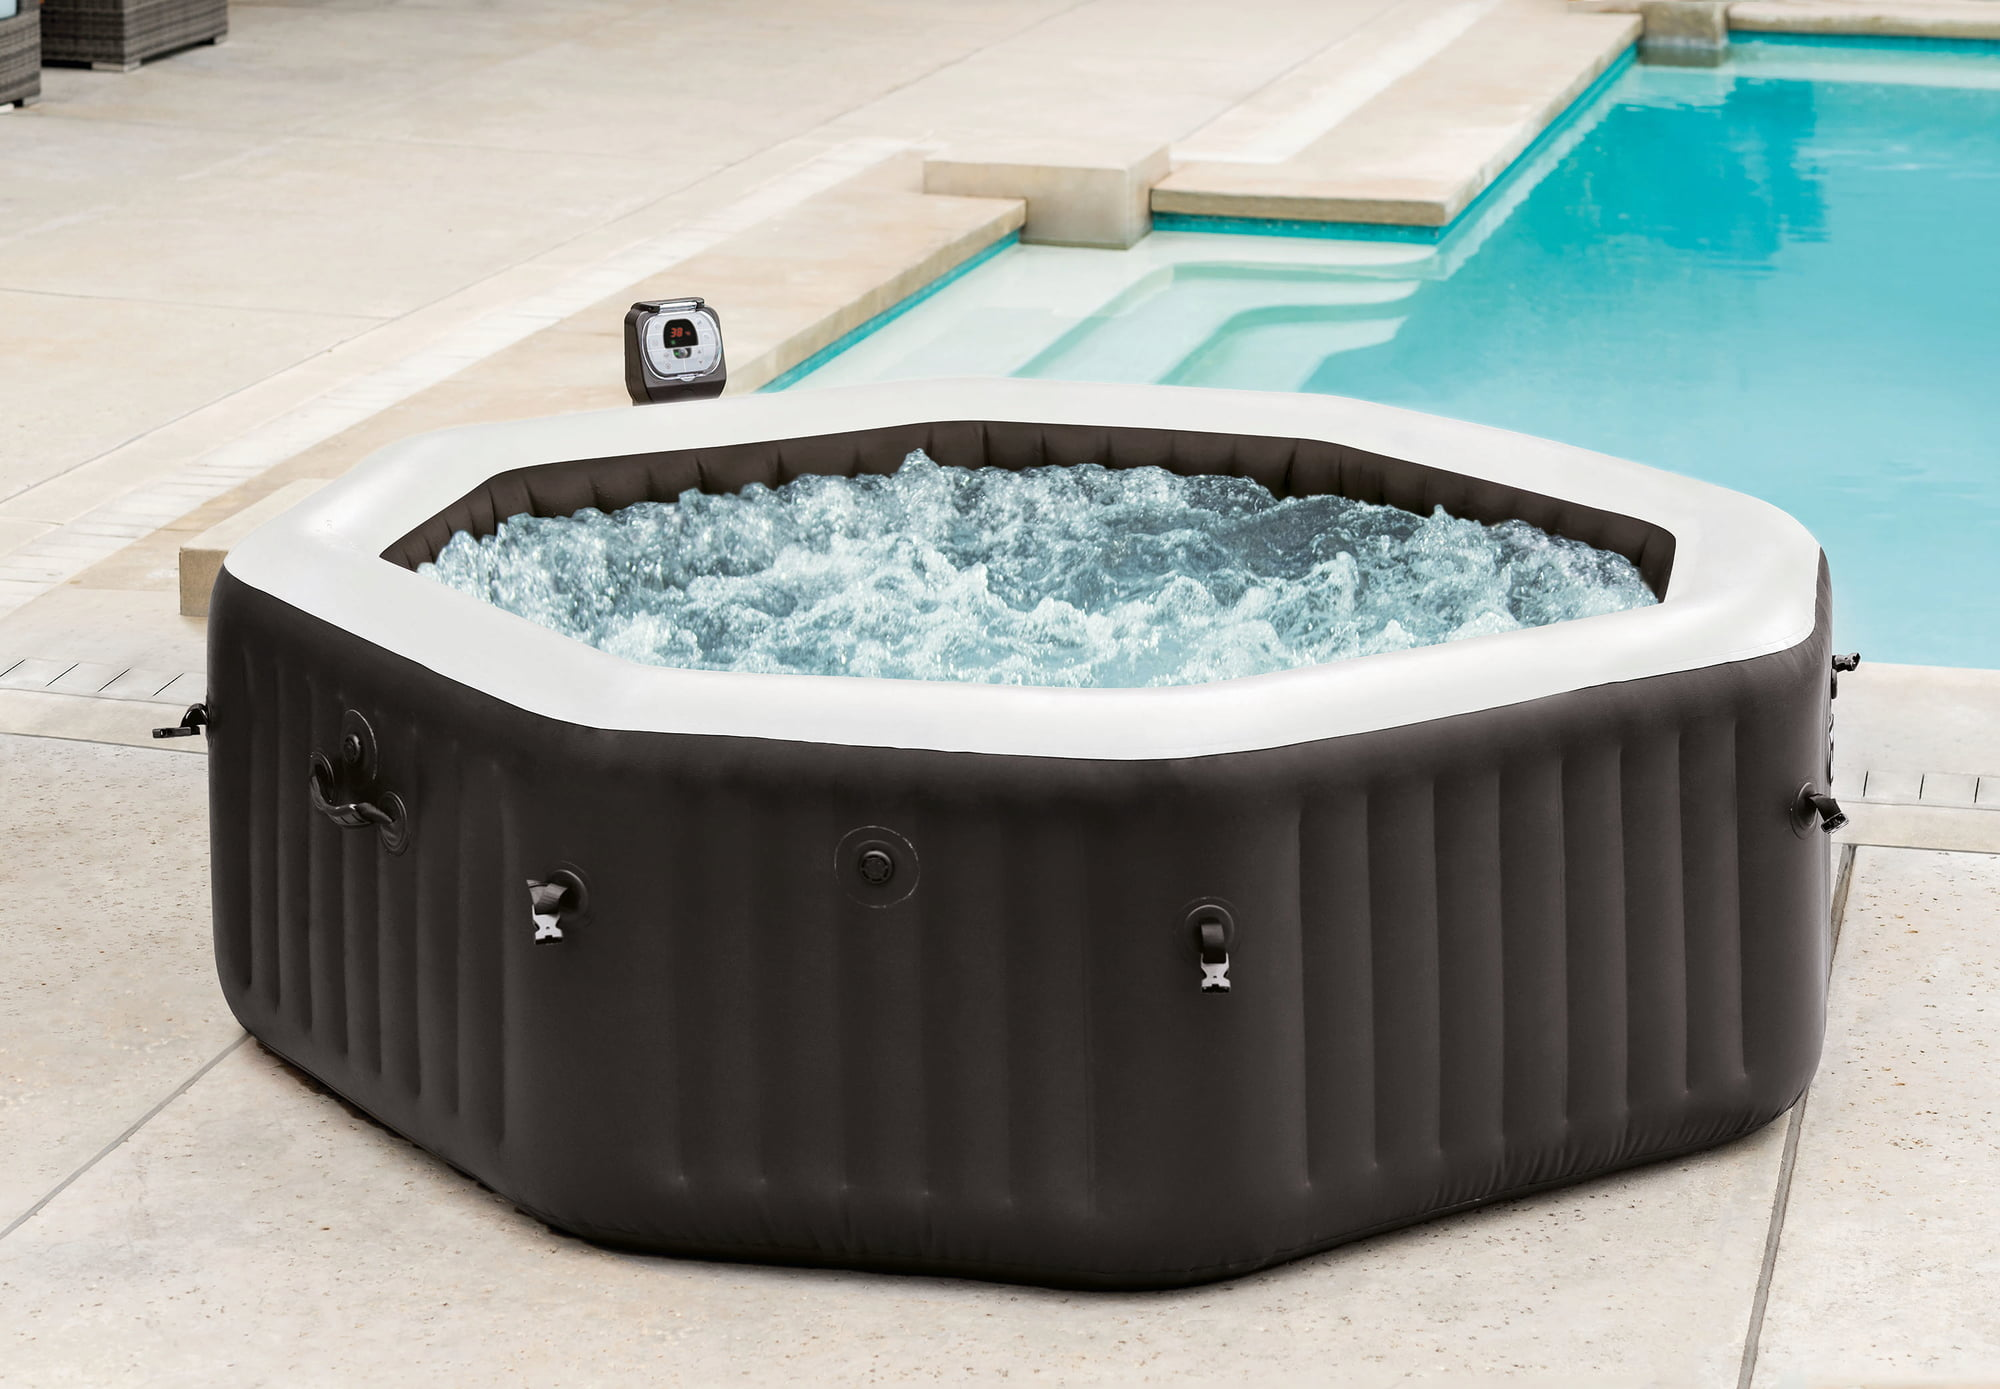 Wärmepumpe Pool Undicht Intex Whirlpool Pure Spa Bubble Jet Groß